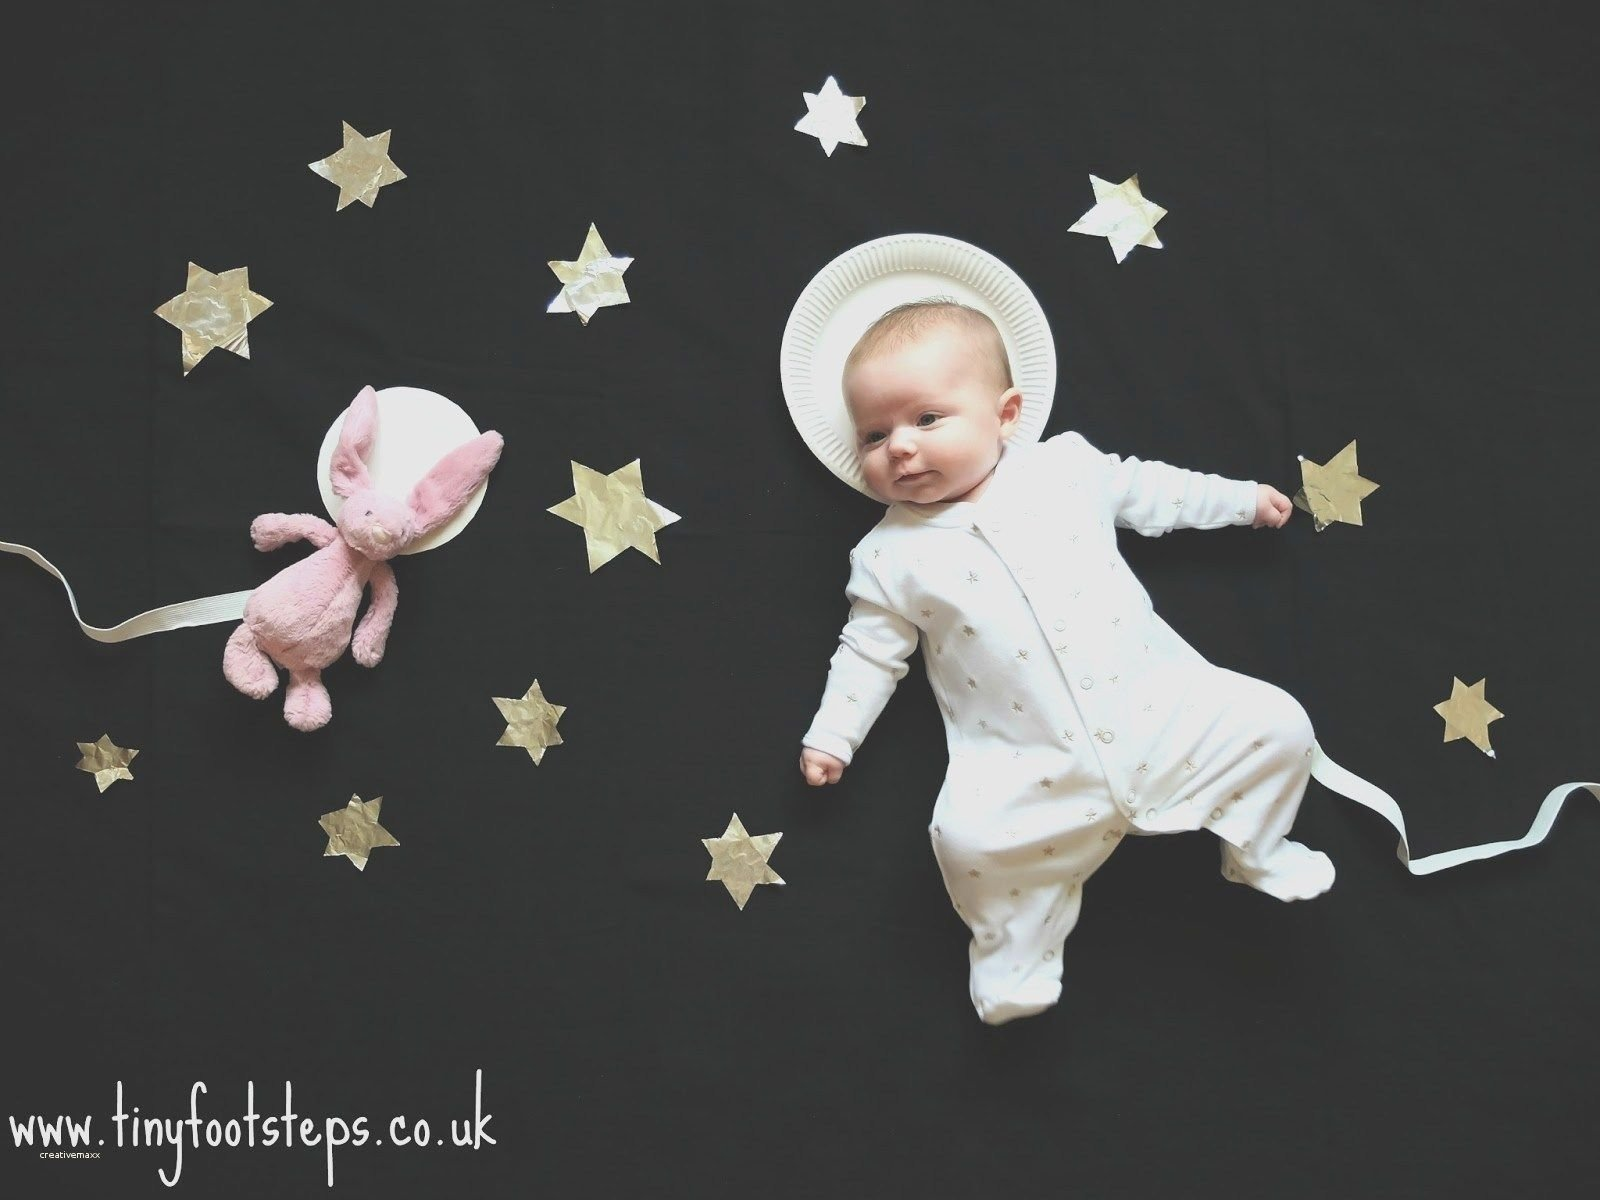 10 Best Baby Picture Ideas At Home lovely home newborn photography ideas newborn photos newborn 2020